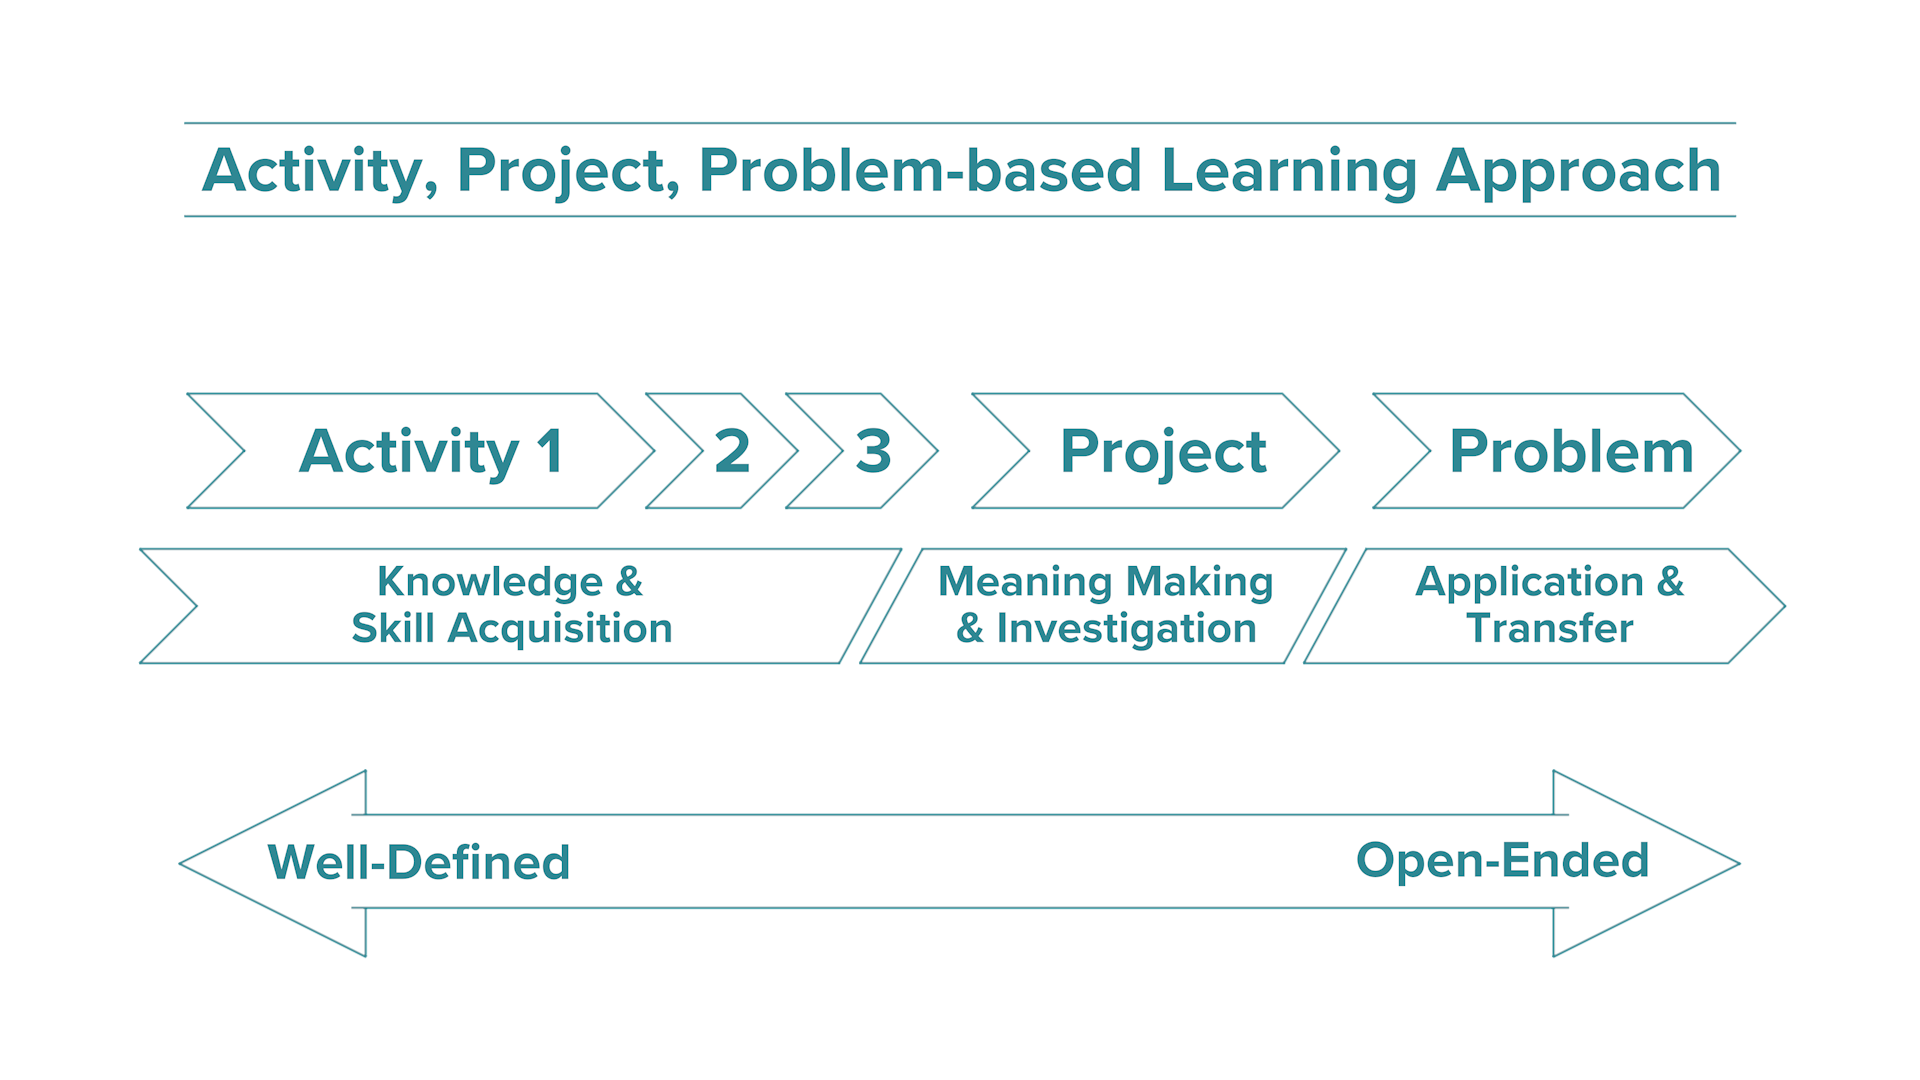 Activity, Project, Problem based Learning Approach